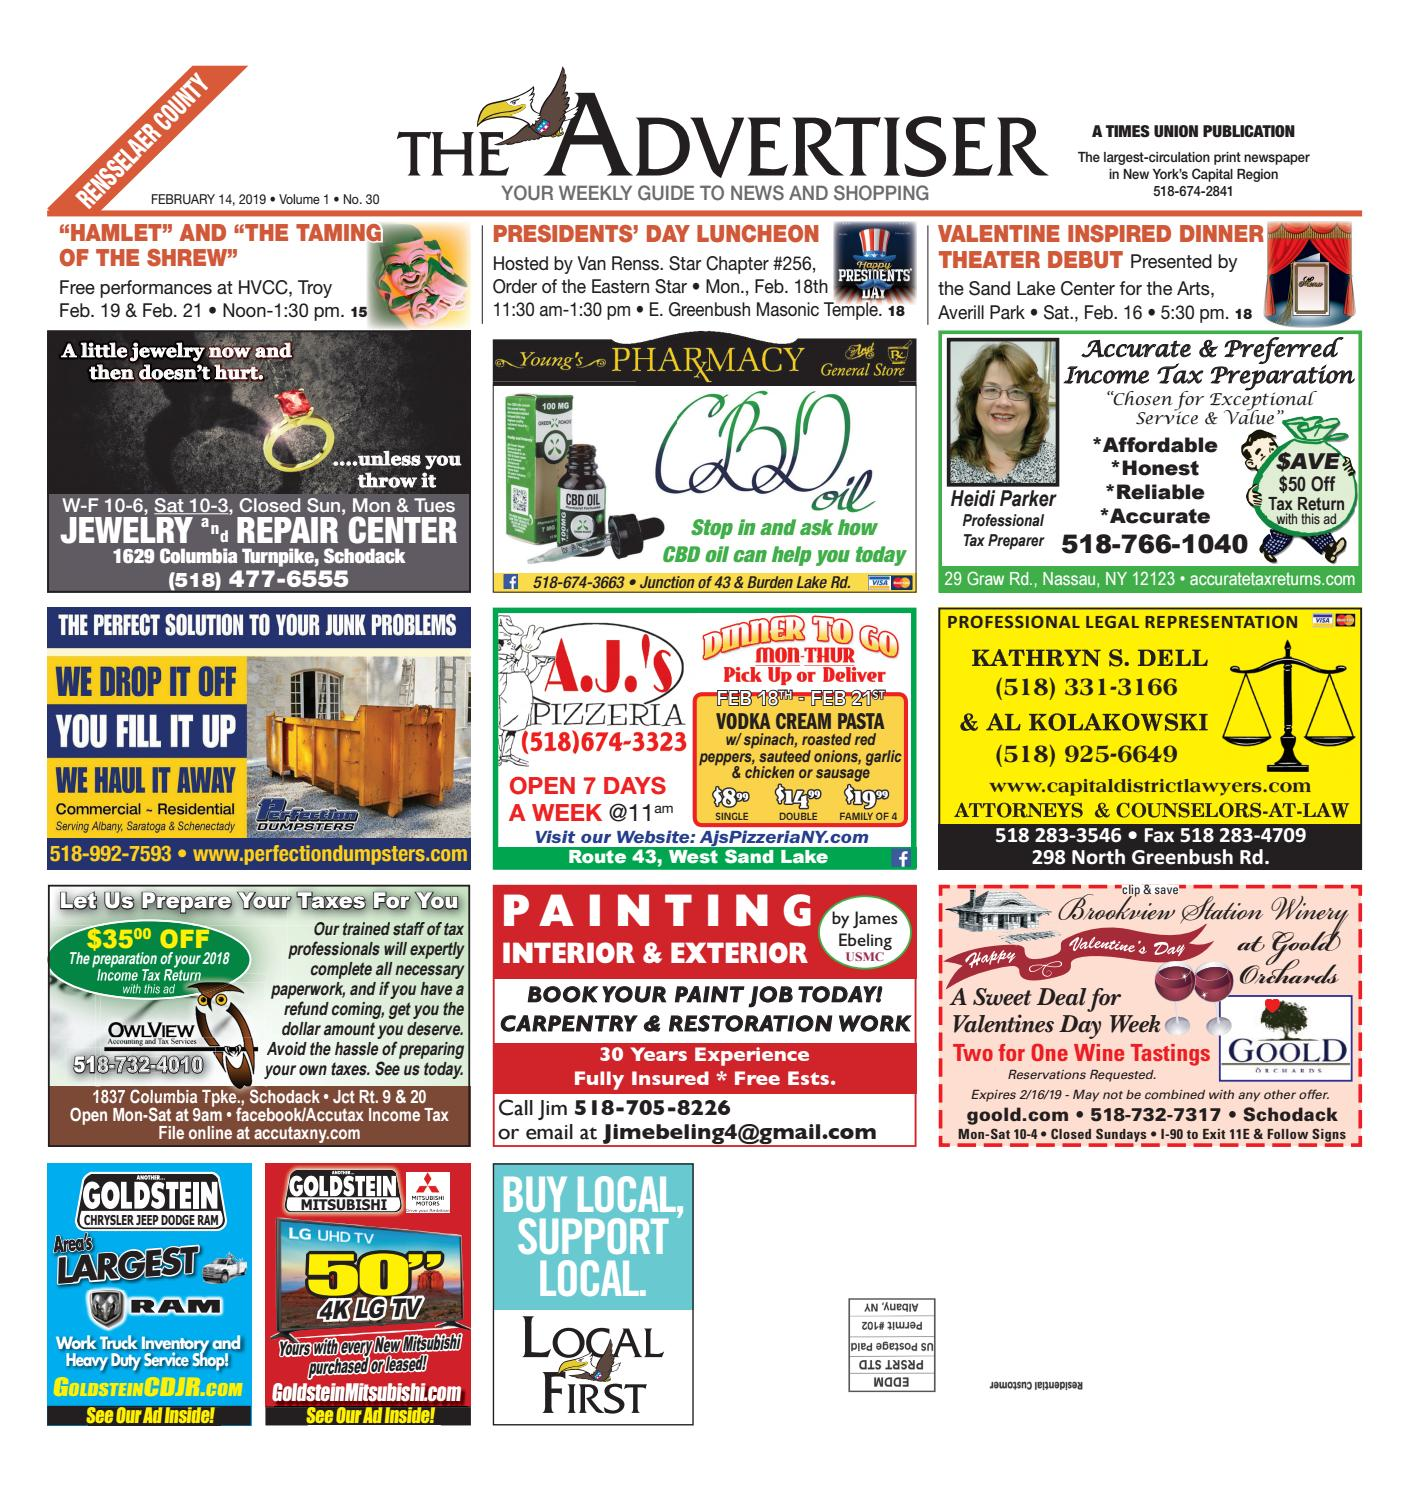 b01c5b8d0 Local First The Advertiser 021419 by Capital Region Weekly Newspapers -  issuu